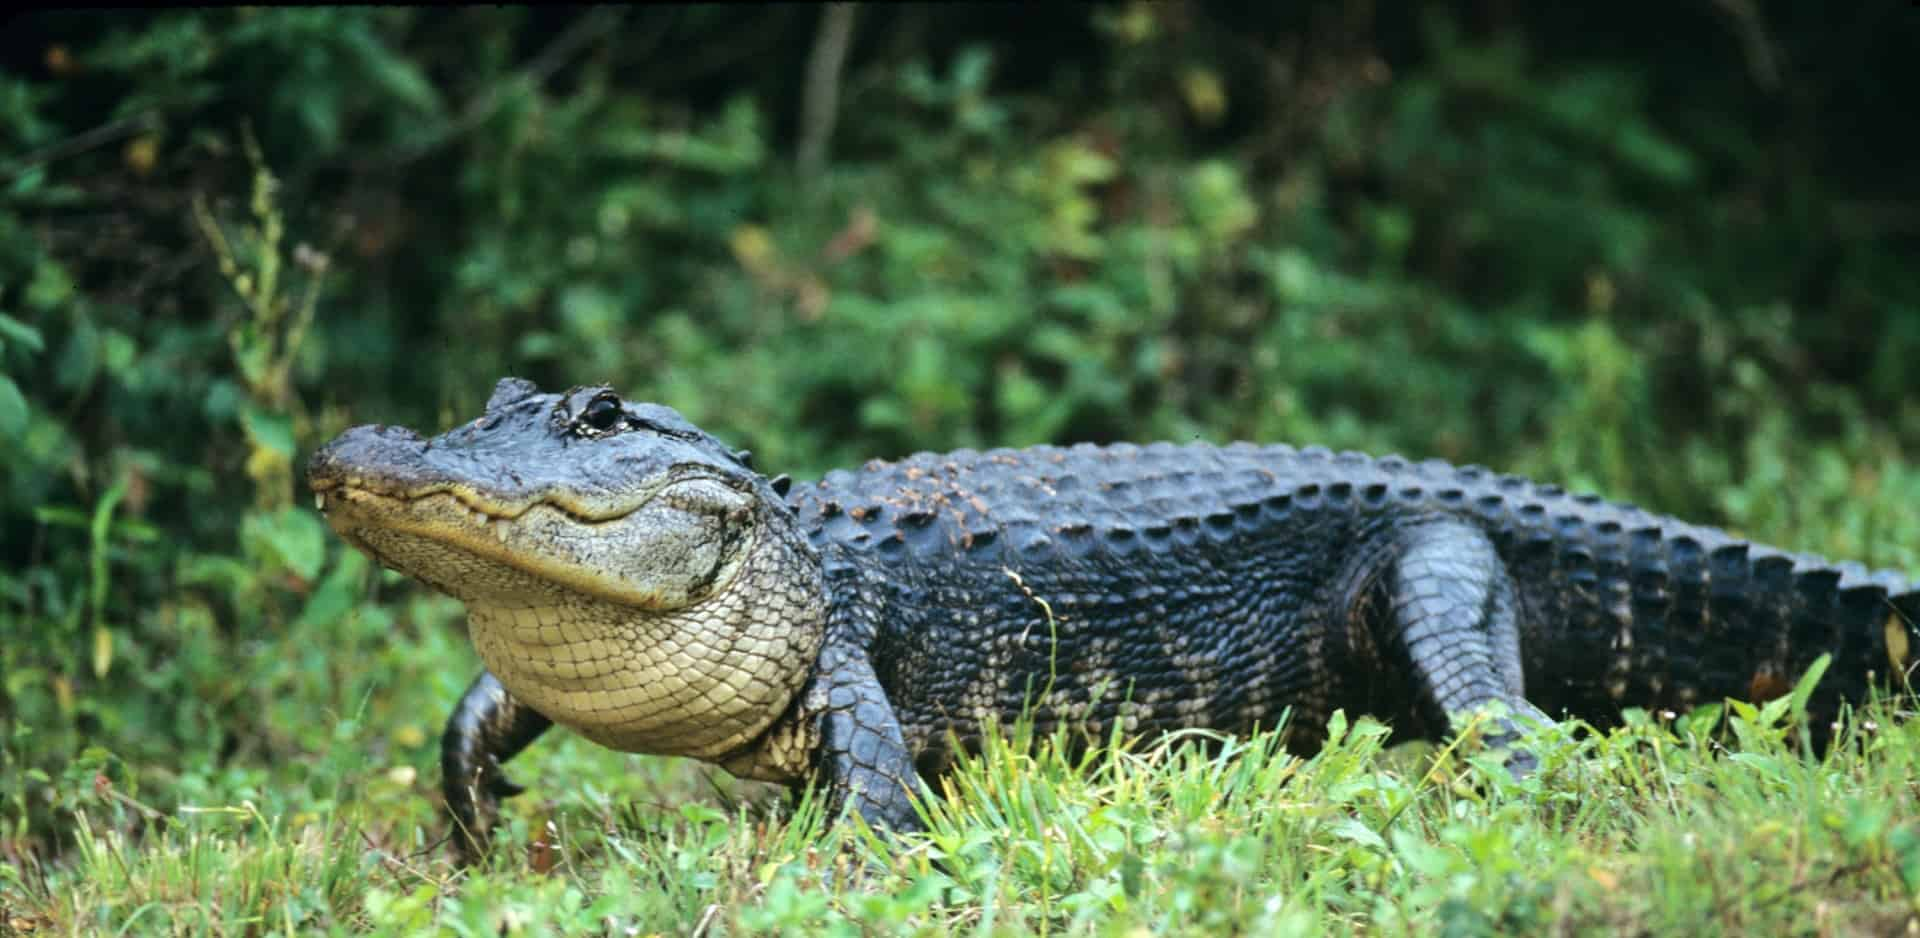 What is the size and length of an alligator?